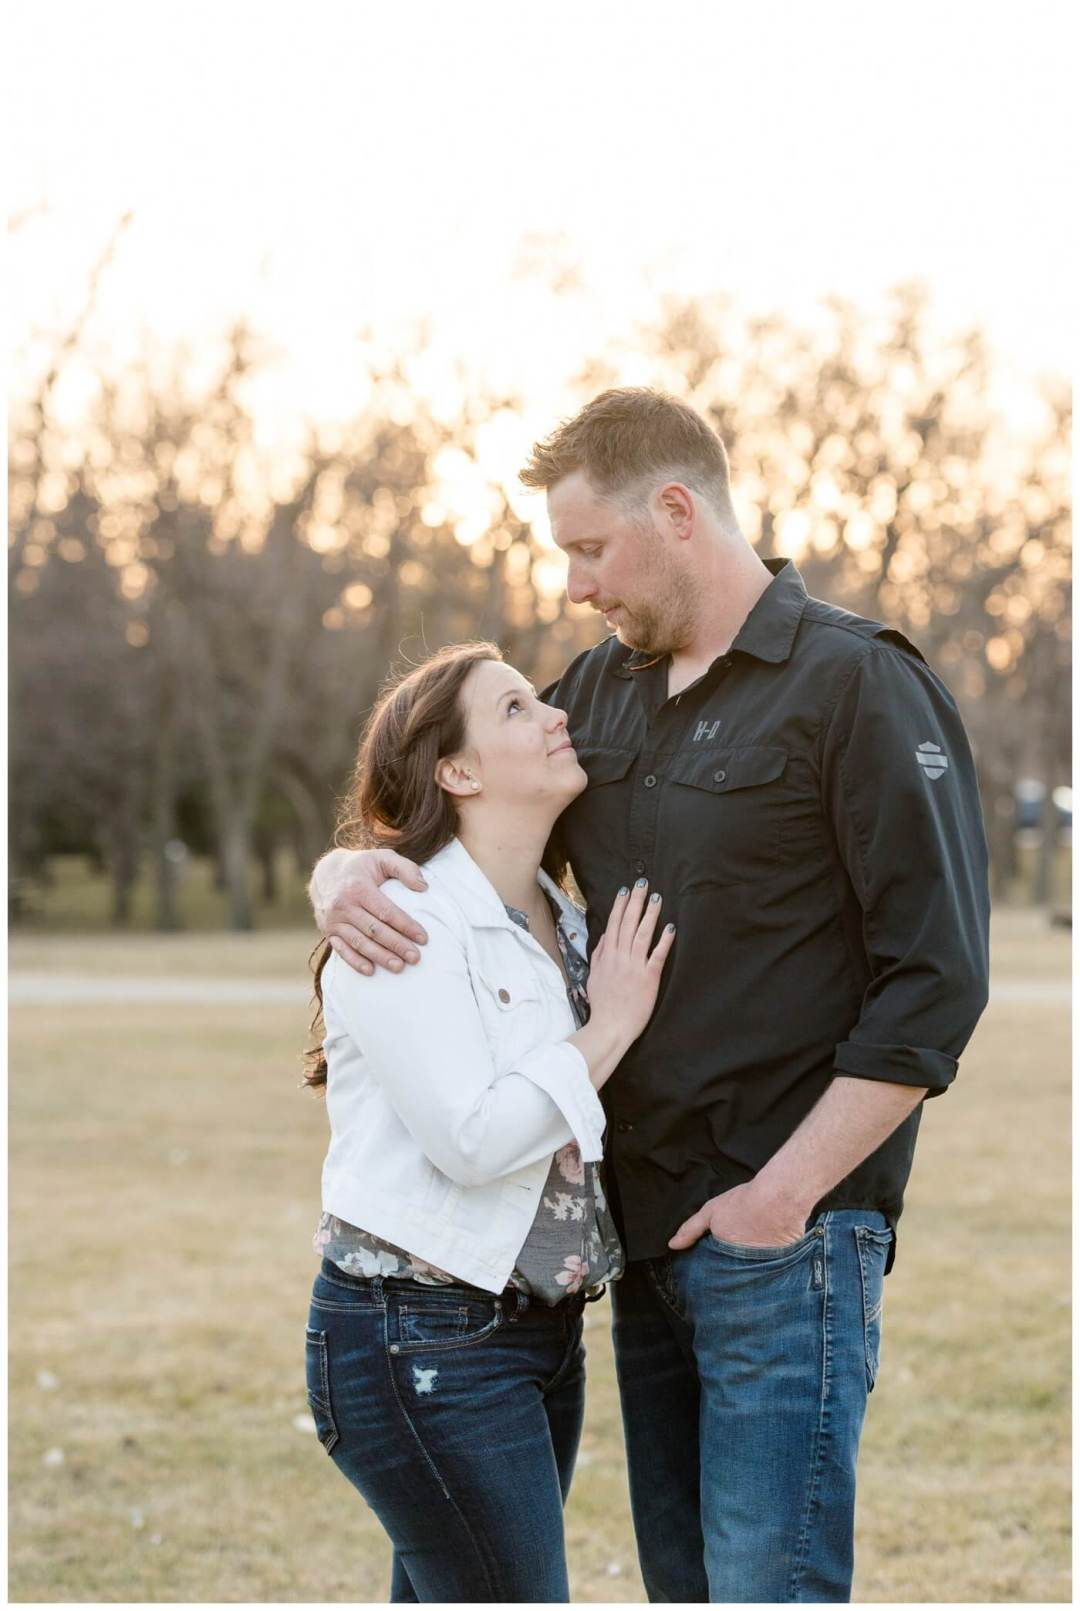 Travis & Coralynn Regina Engagement Session- Wascana Park engagement session at sunset